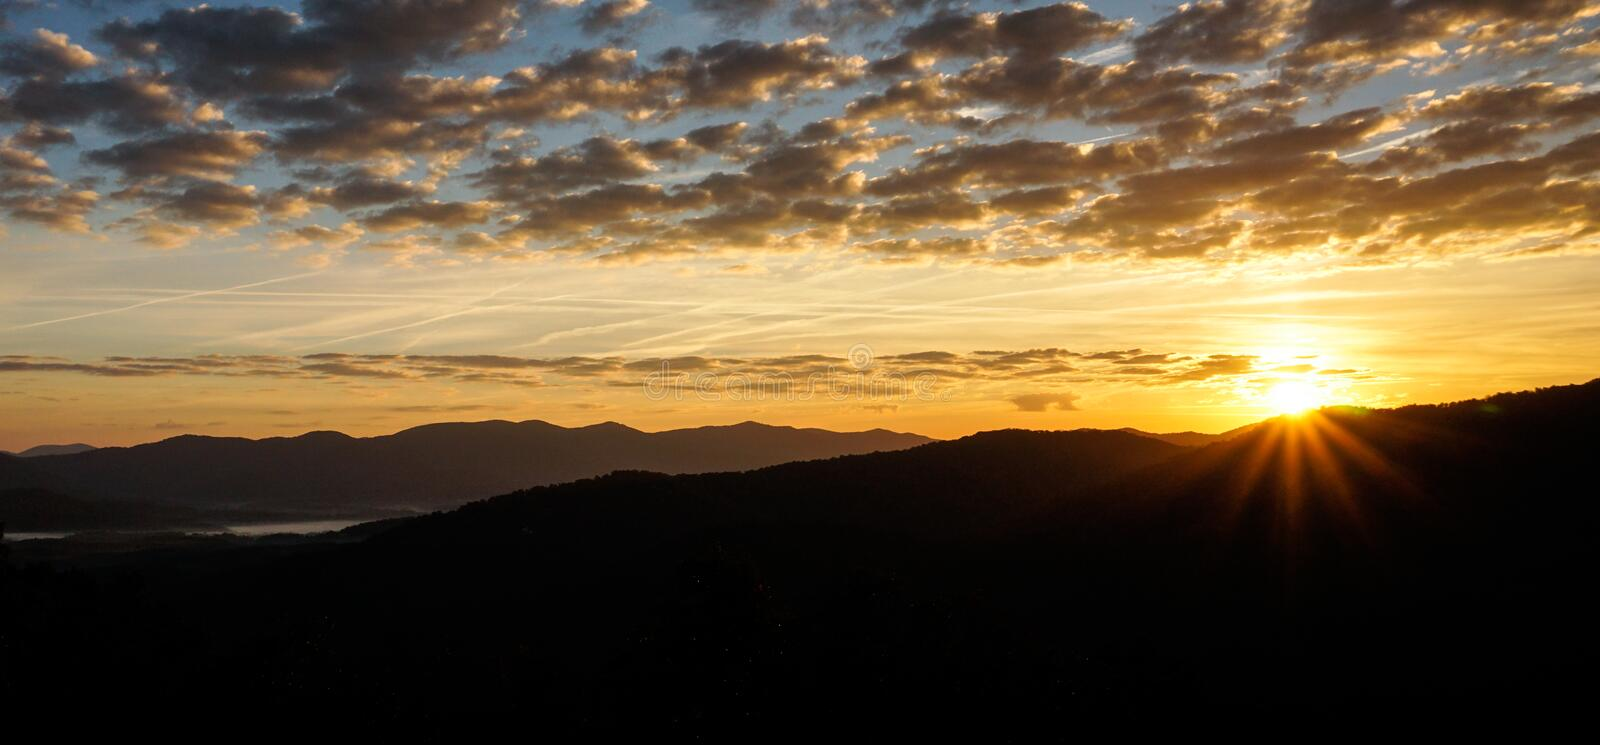 Sunrise over mountain silhouette in the Appalachian mountains of western North Carolina royalty free stock photography